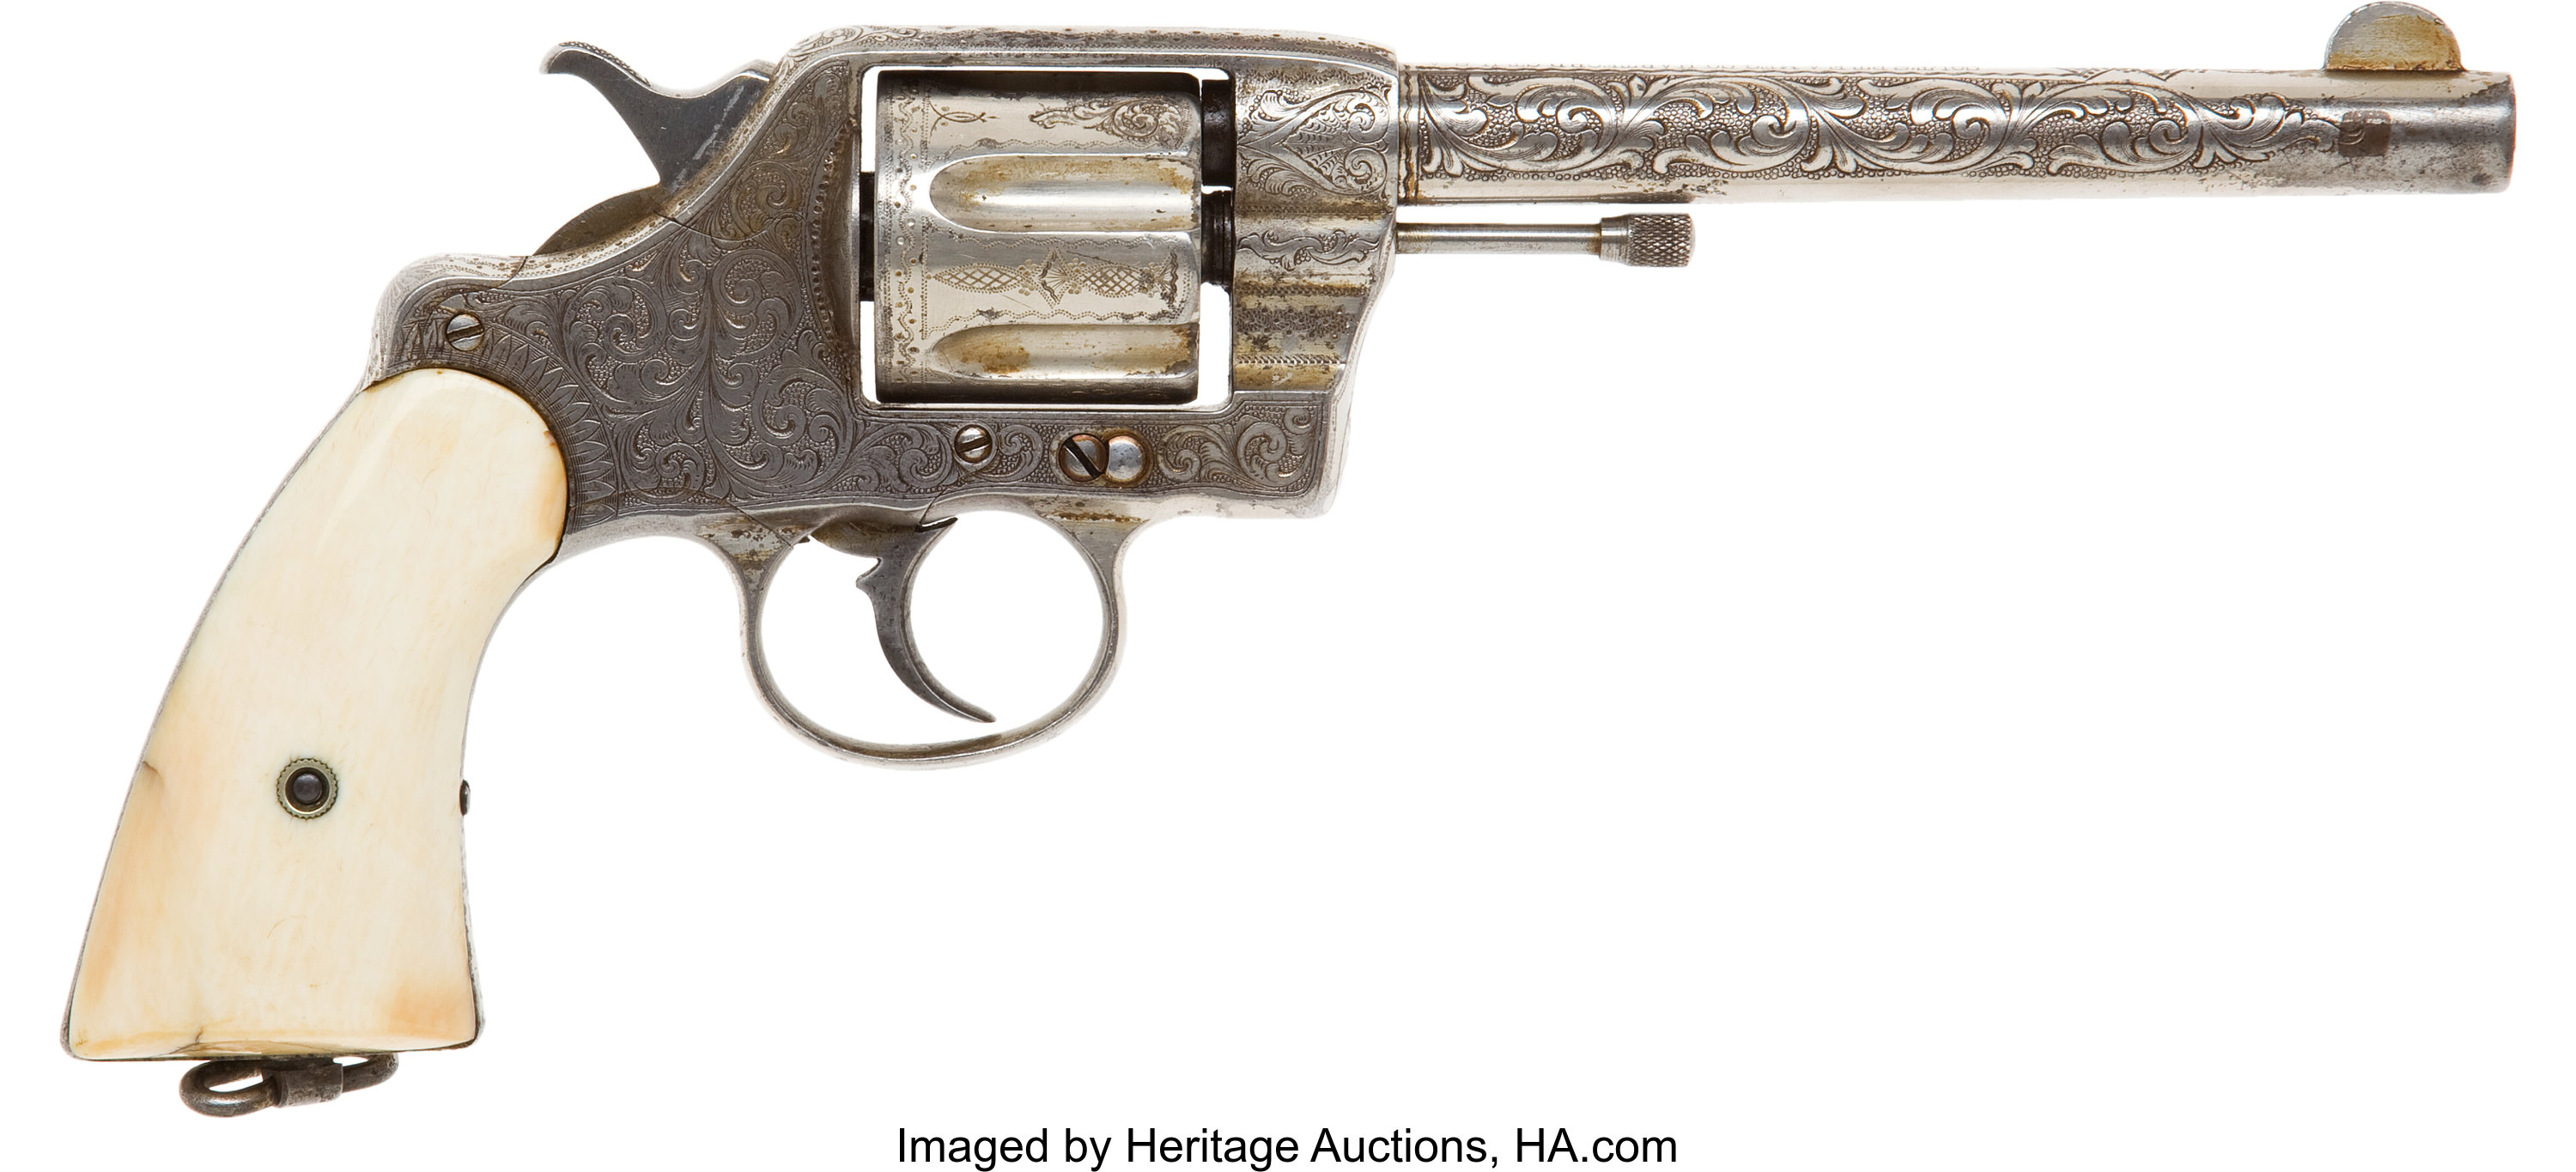 Engraved Colt Model 1892 Double Action Revolver with Ivory Grips